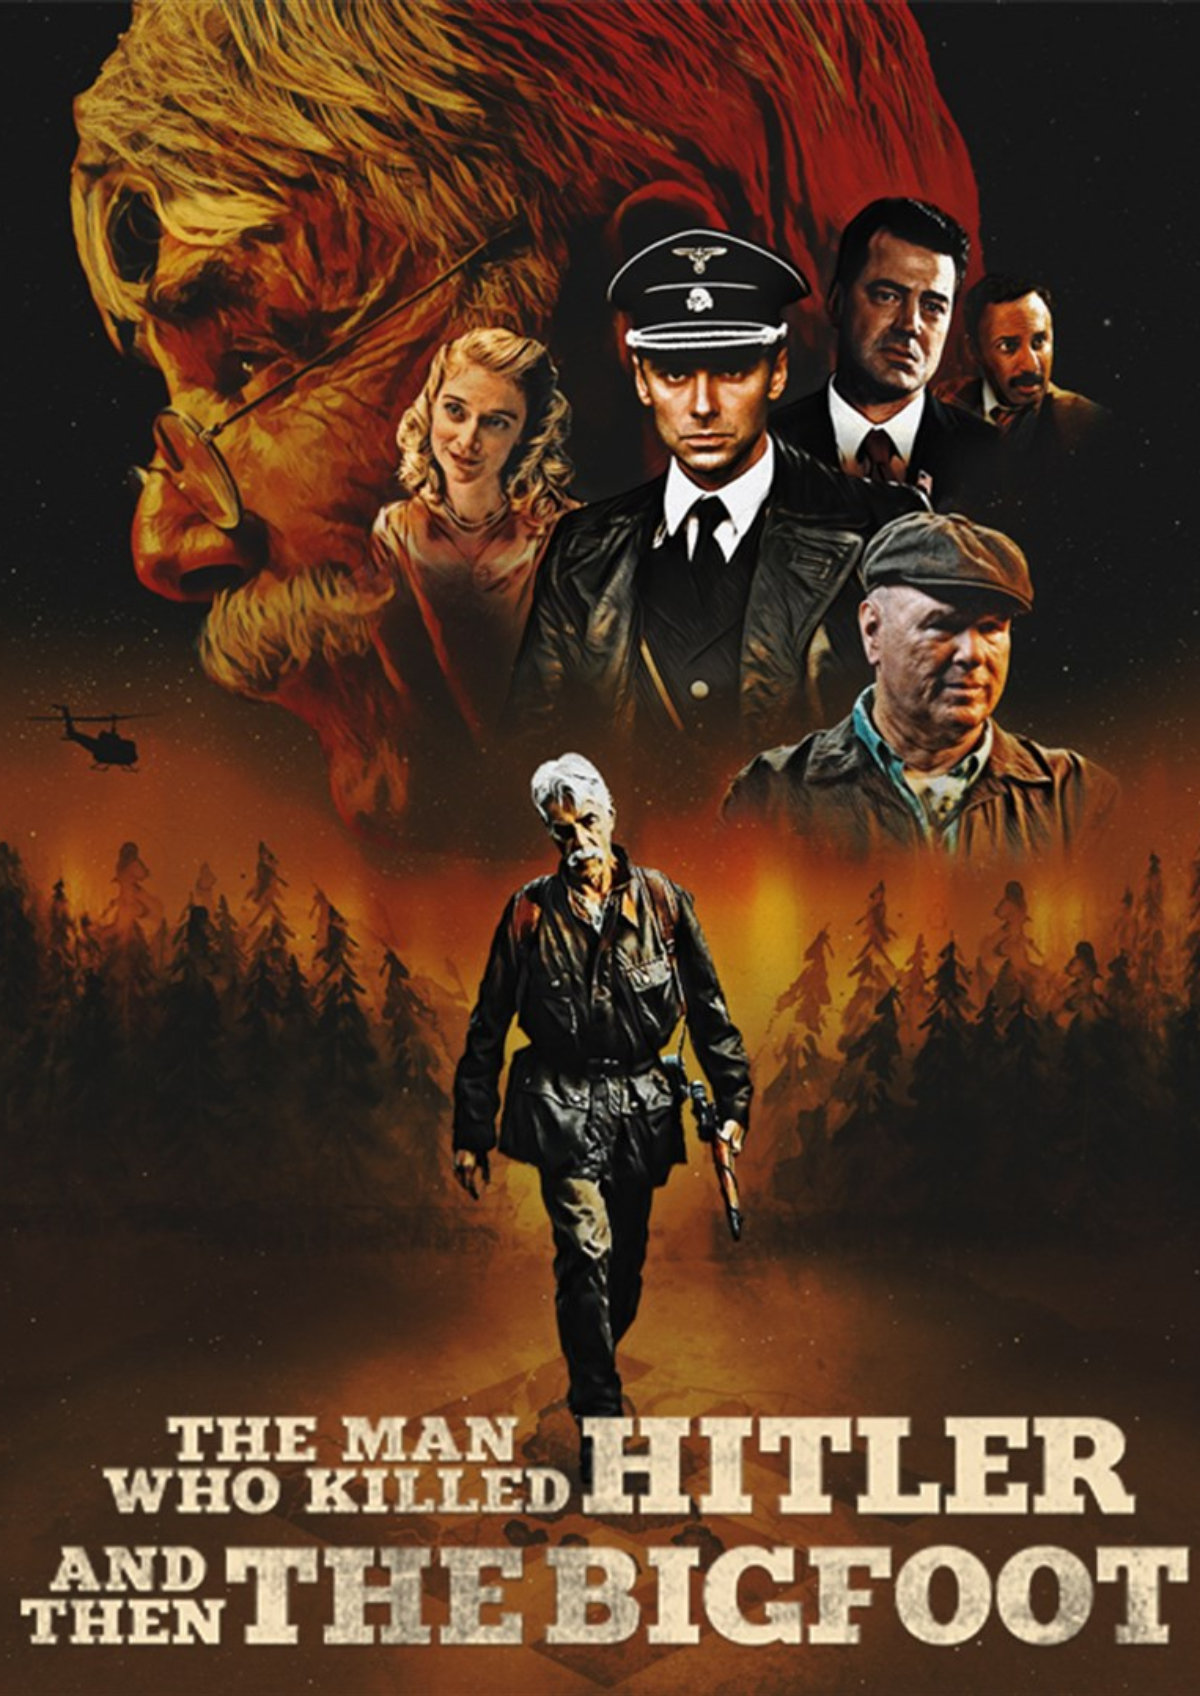 'The Man Who Killed Hitler And Then The Bigfoot' movie poster